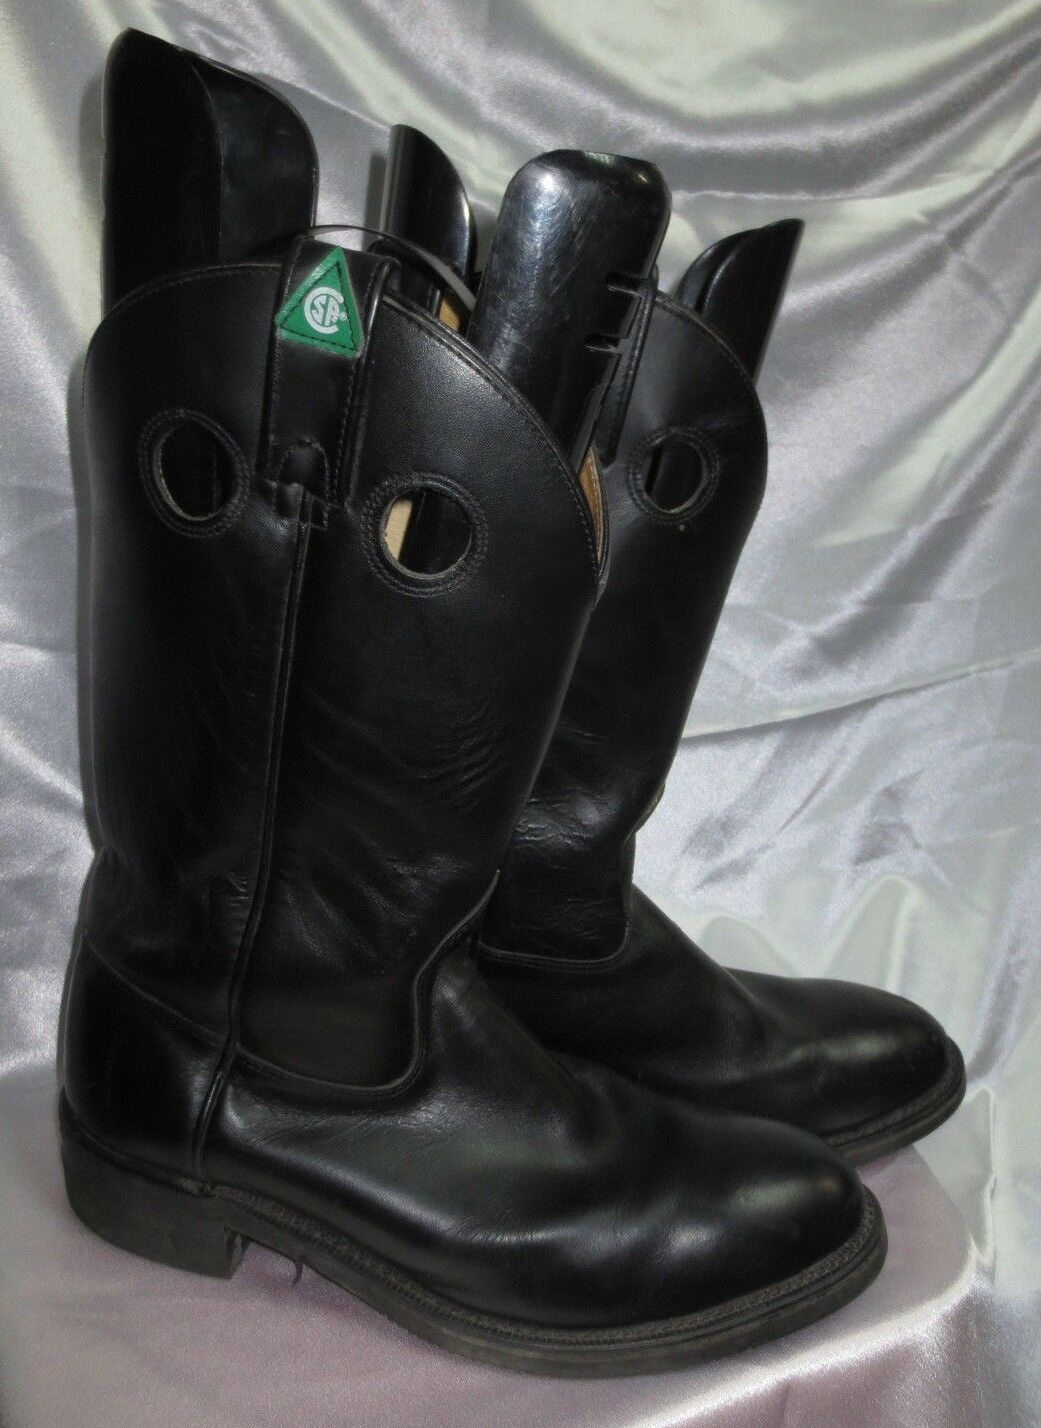 Canada West Boots CSA approved Cowboy Boots Sz 38 Black Oil & Chemical Resistant